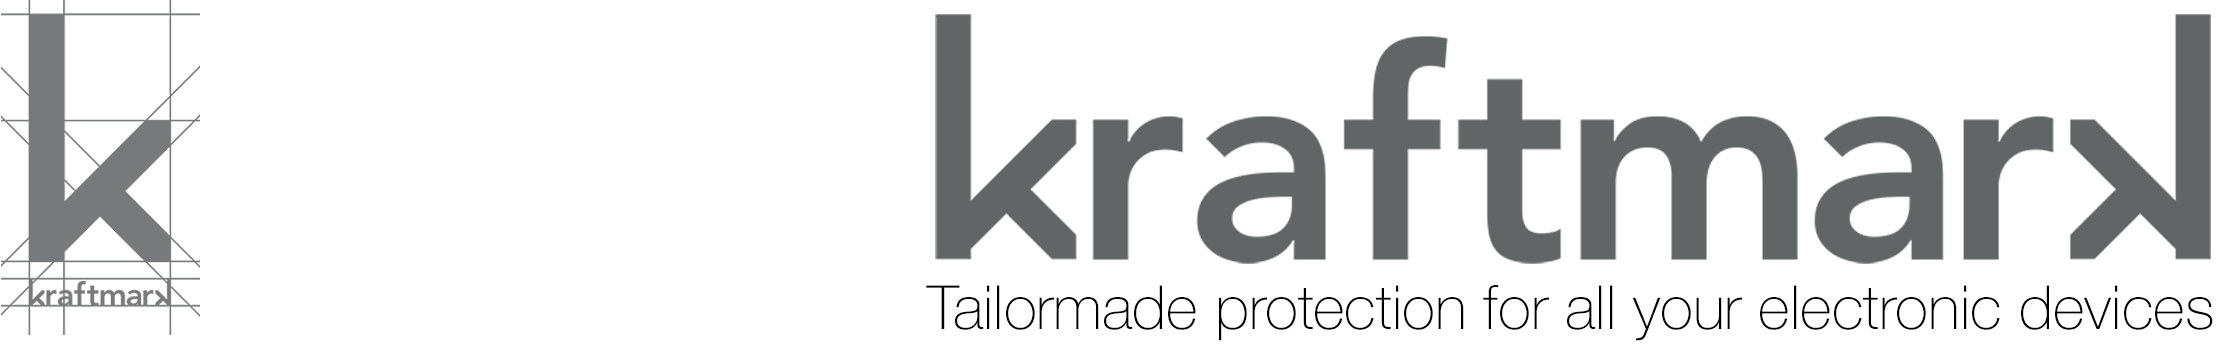 kraftmark - The brand for tailor-made protections of electronic devices